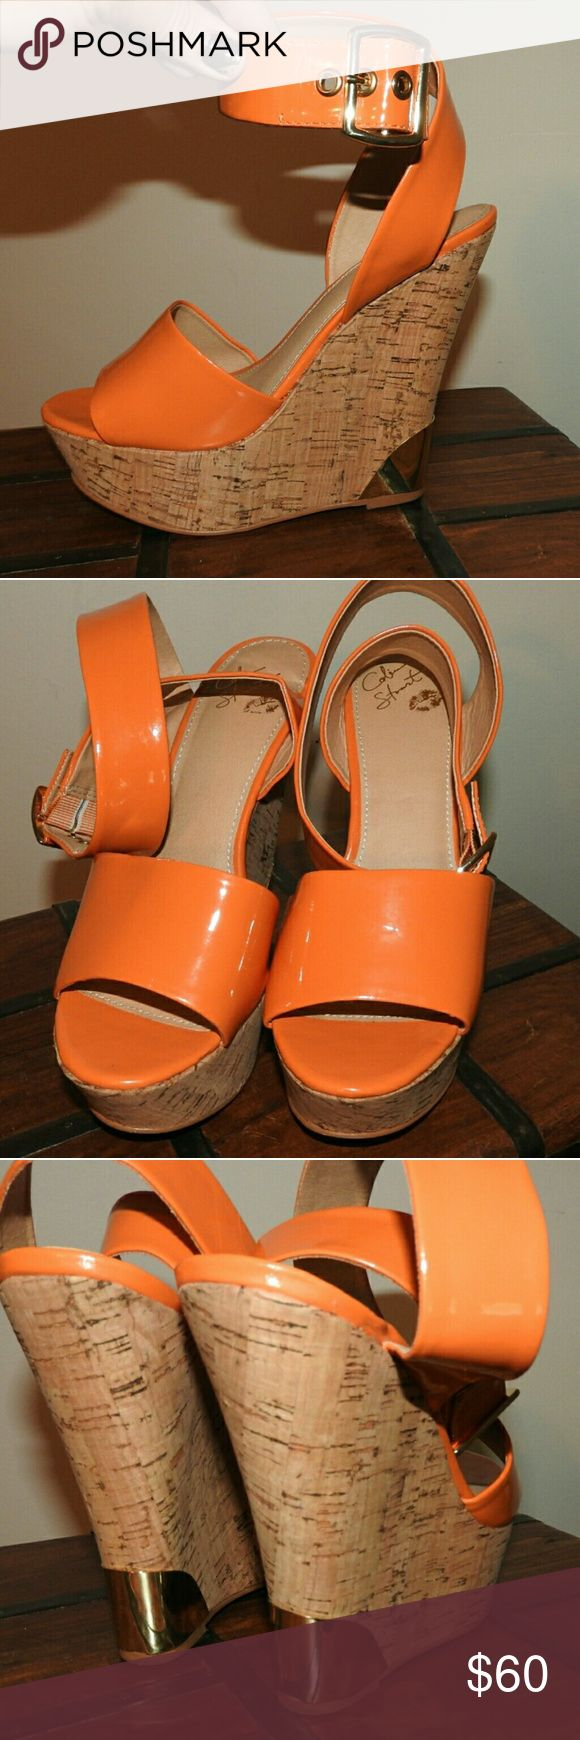 Colin Stuart Wedge High Rise Patent leather orange wedge with gold buckle and heel tap. Cork wrapped heel. Colin Stuart Shoes Wedges